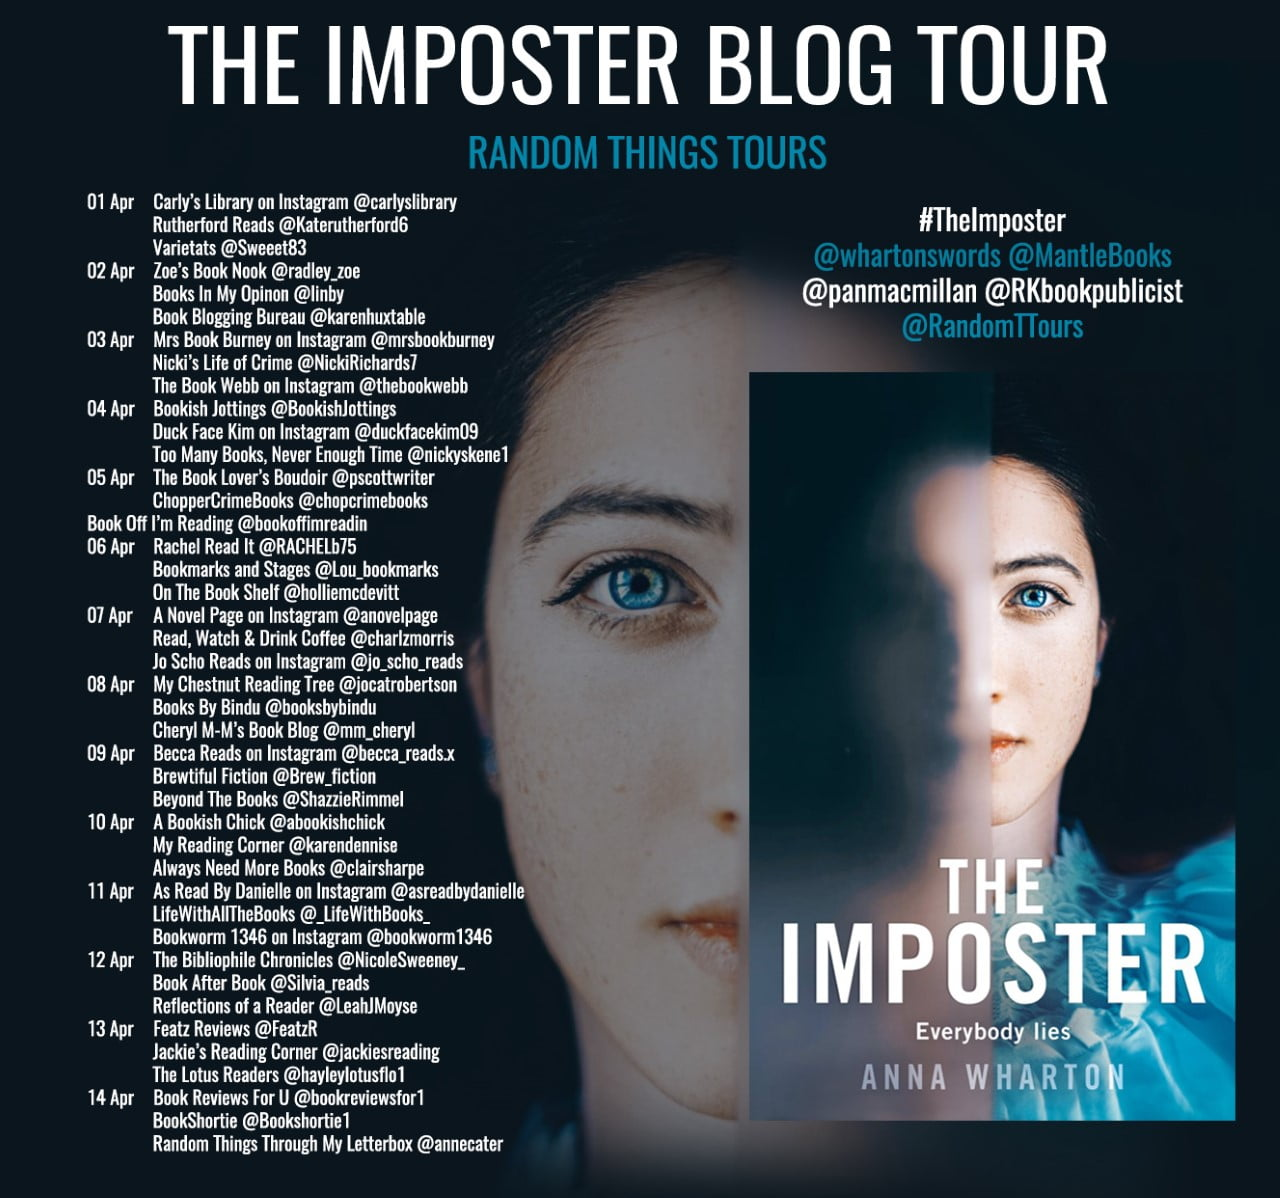 The Imposter – Anna Wharton